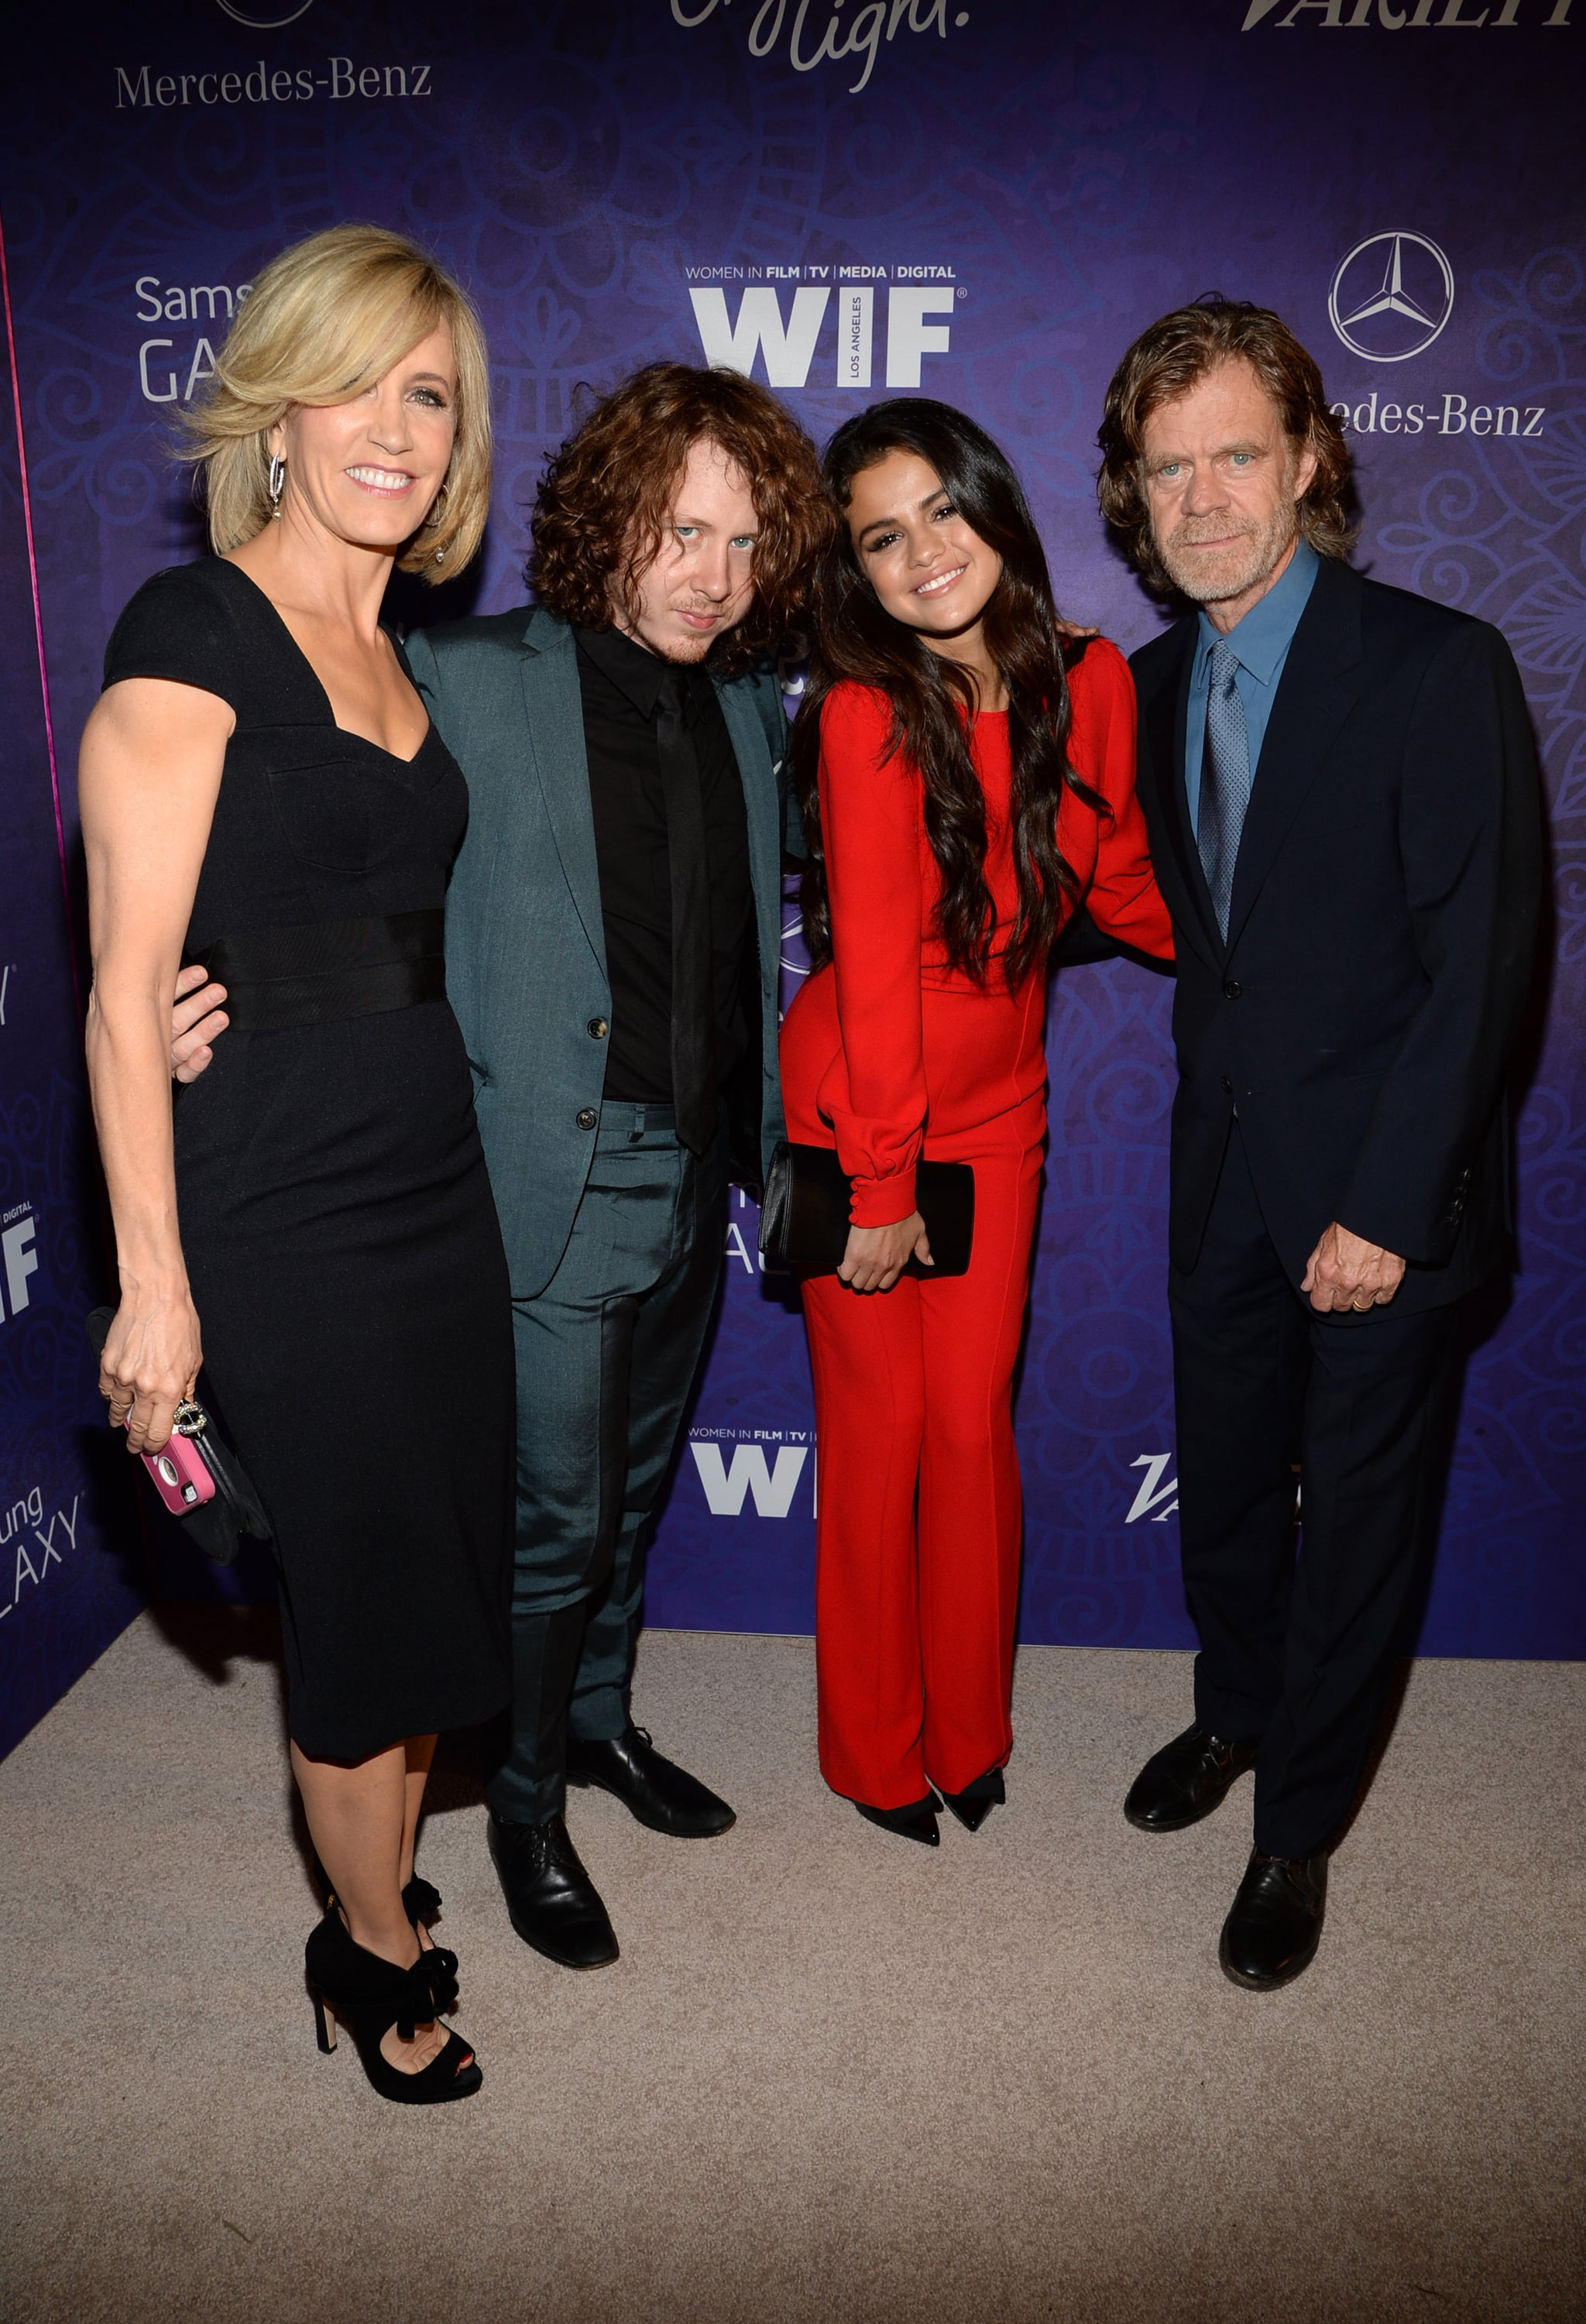 On Saturday, Selena Gomez hung out with Felicity Huffman, Ben Kweller, and William H. Macy at the Variety and Women in Entertainment event in LA.